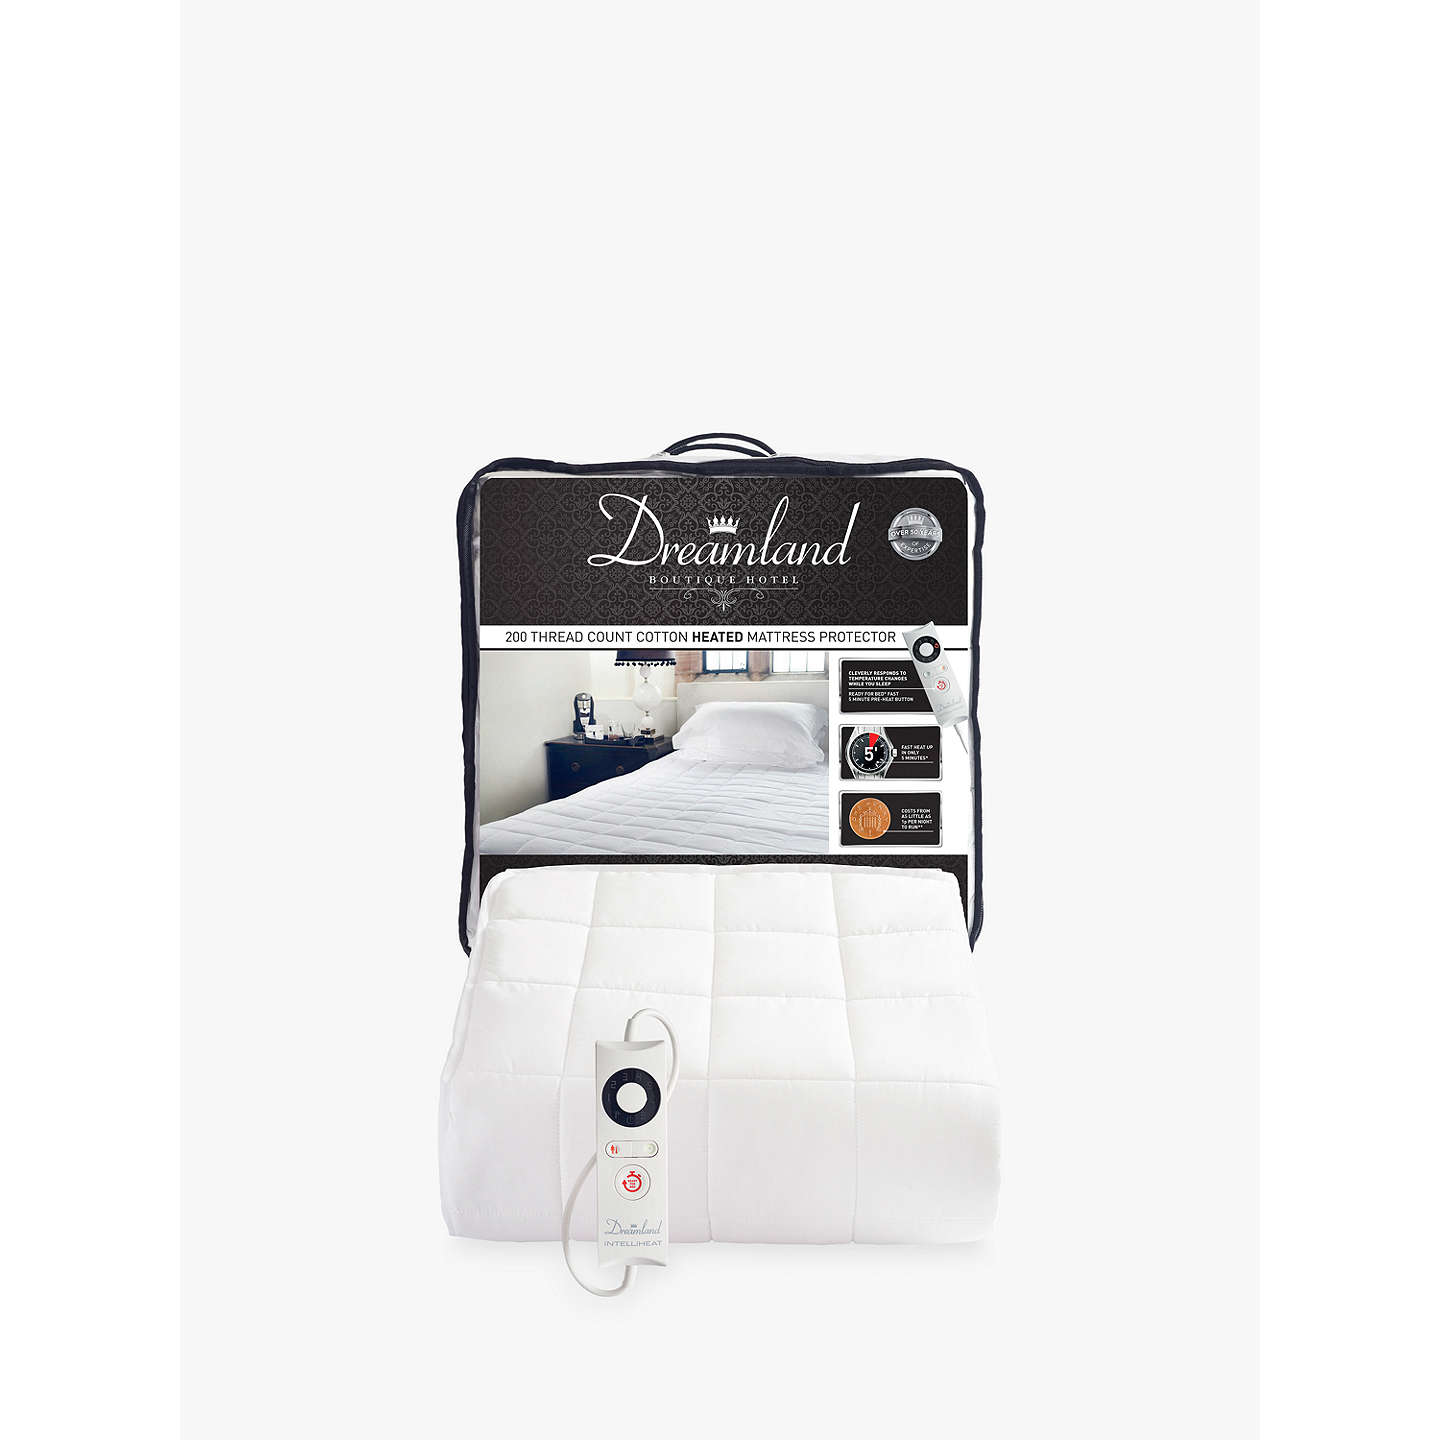 BuyDreamland Cotton Heated Mattress Protector, Single Online at johnlewis.com